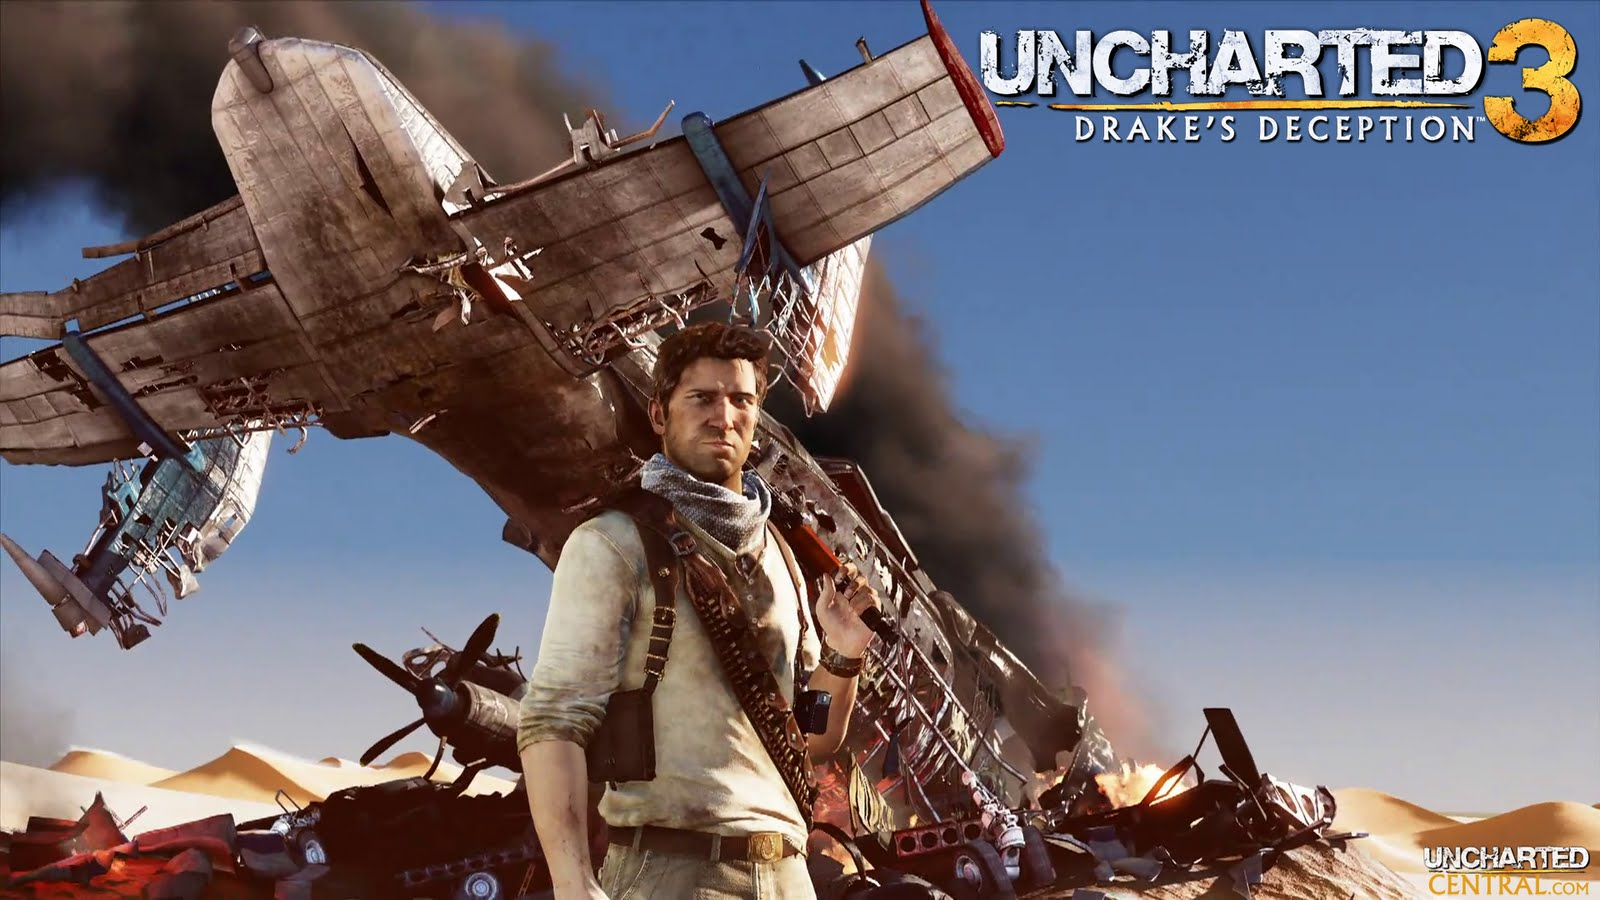 Uncharted 4 Wallpaper Images Pictures   Becuo 1600x900